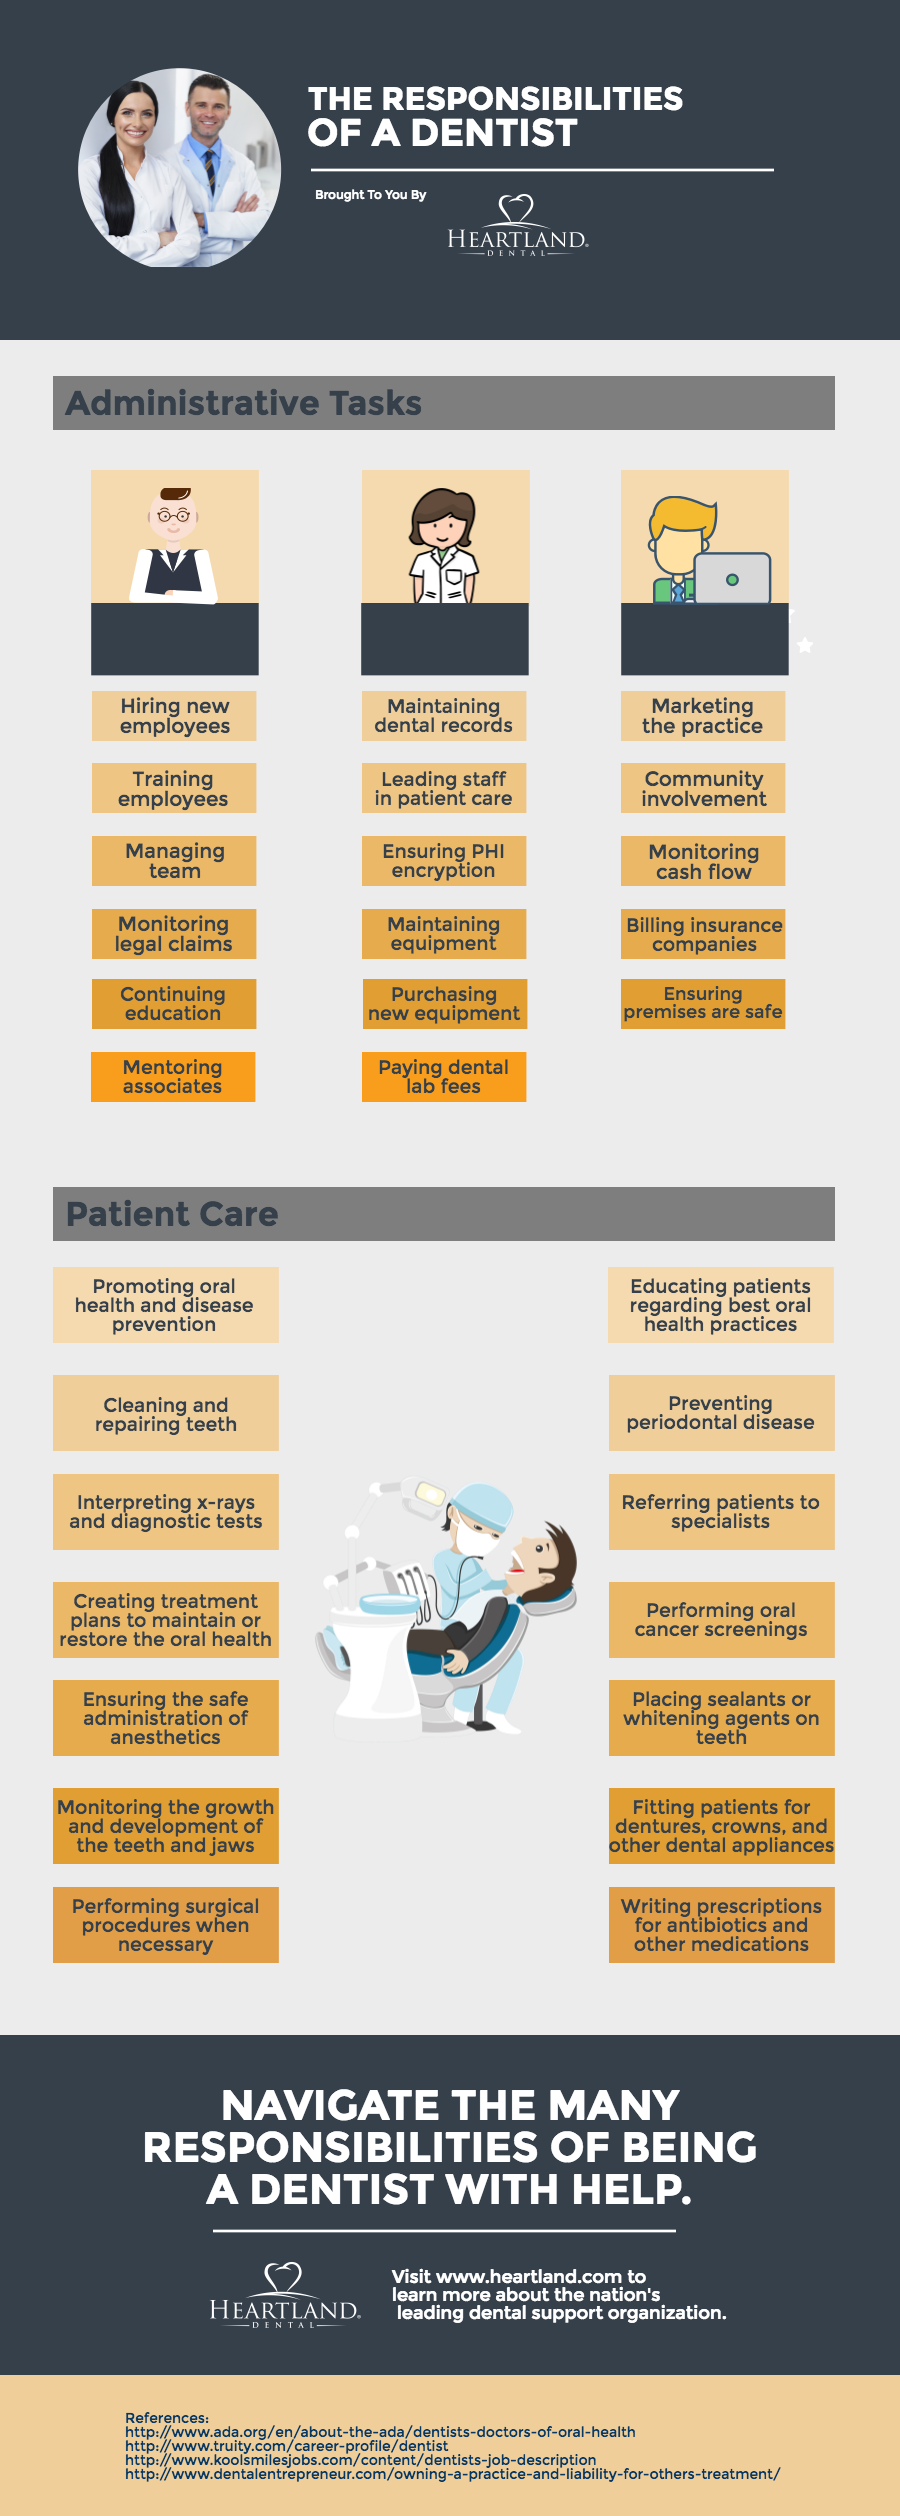 Dentists have many responsibilities when it comes to administrative tasks and patient care.